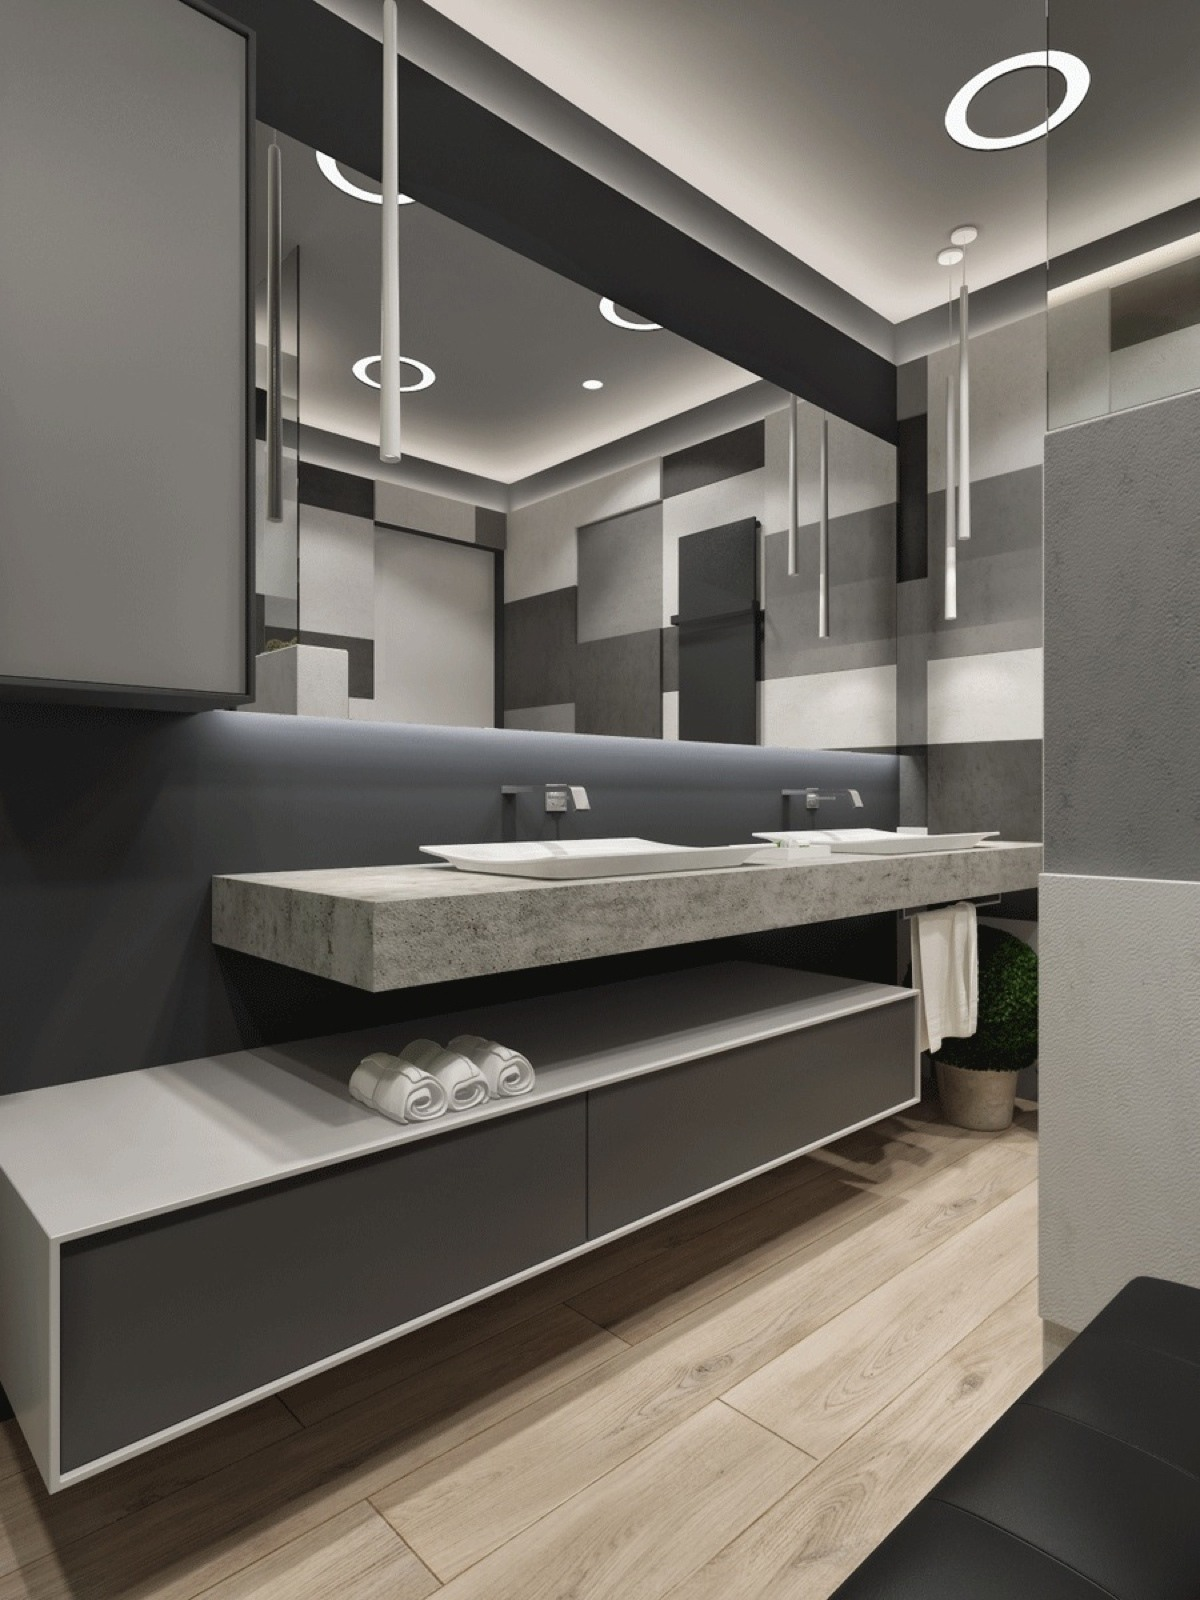 Modern Grayscale Bathroom - Two apartments with sleek grayscale interiors